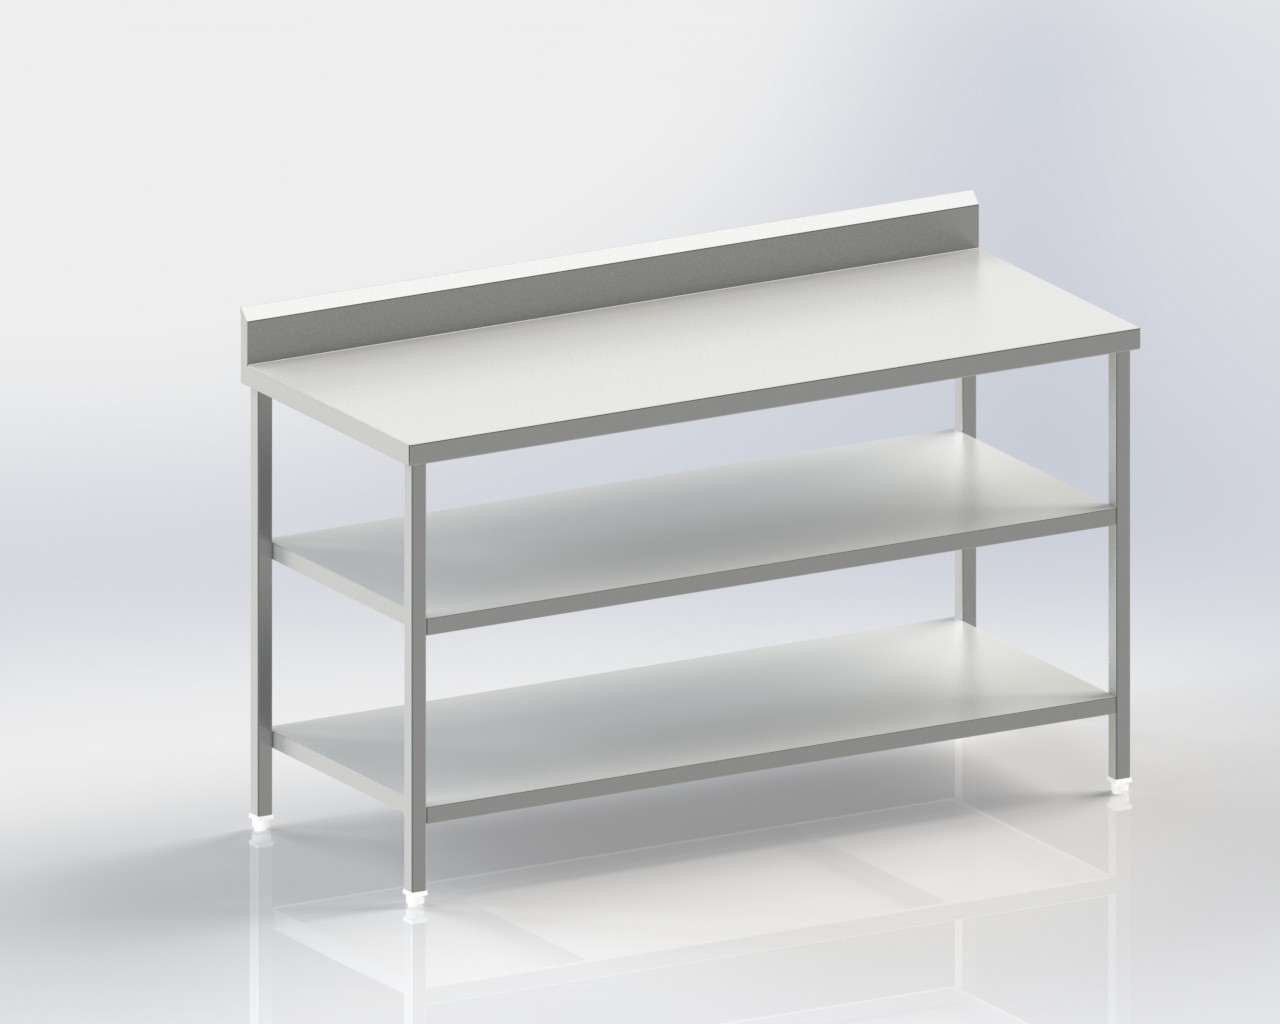 Mobile Table with Lower and Intermediate Shelves